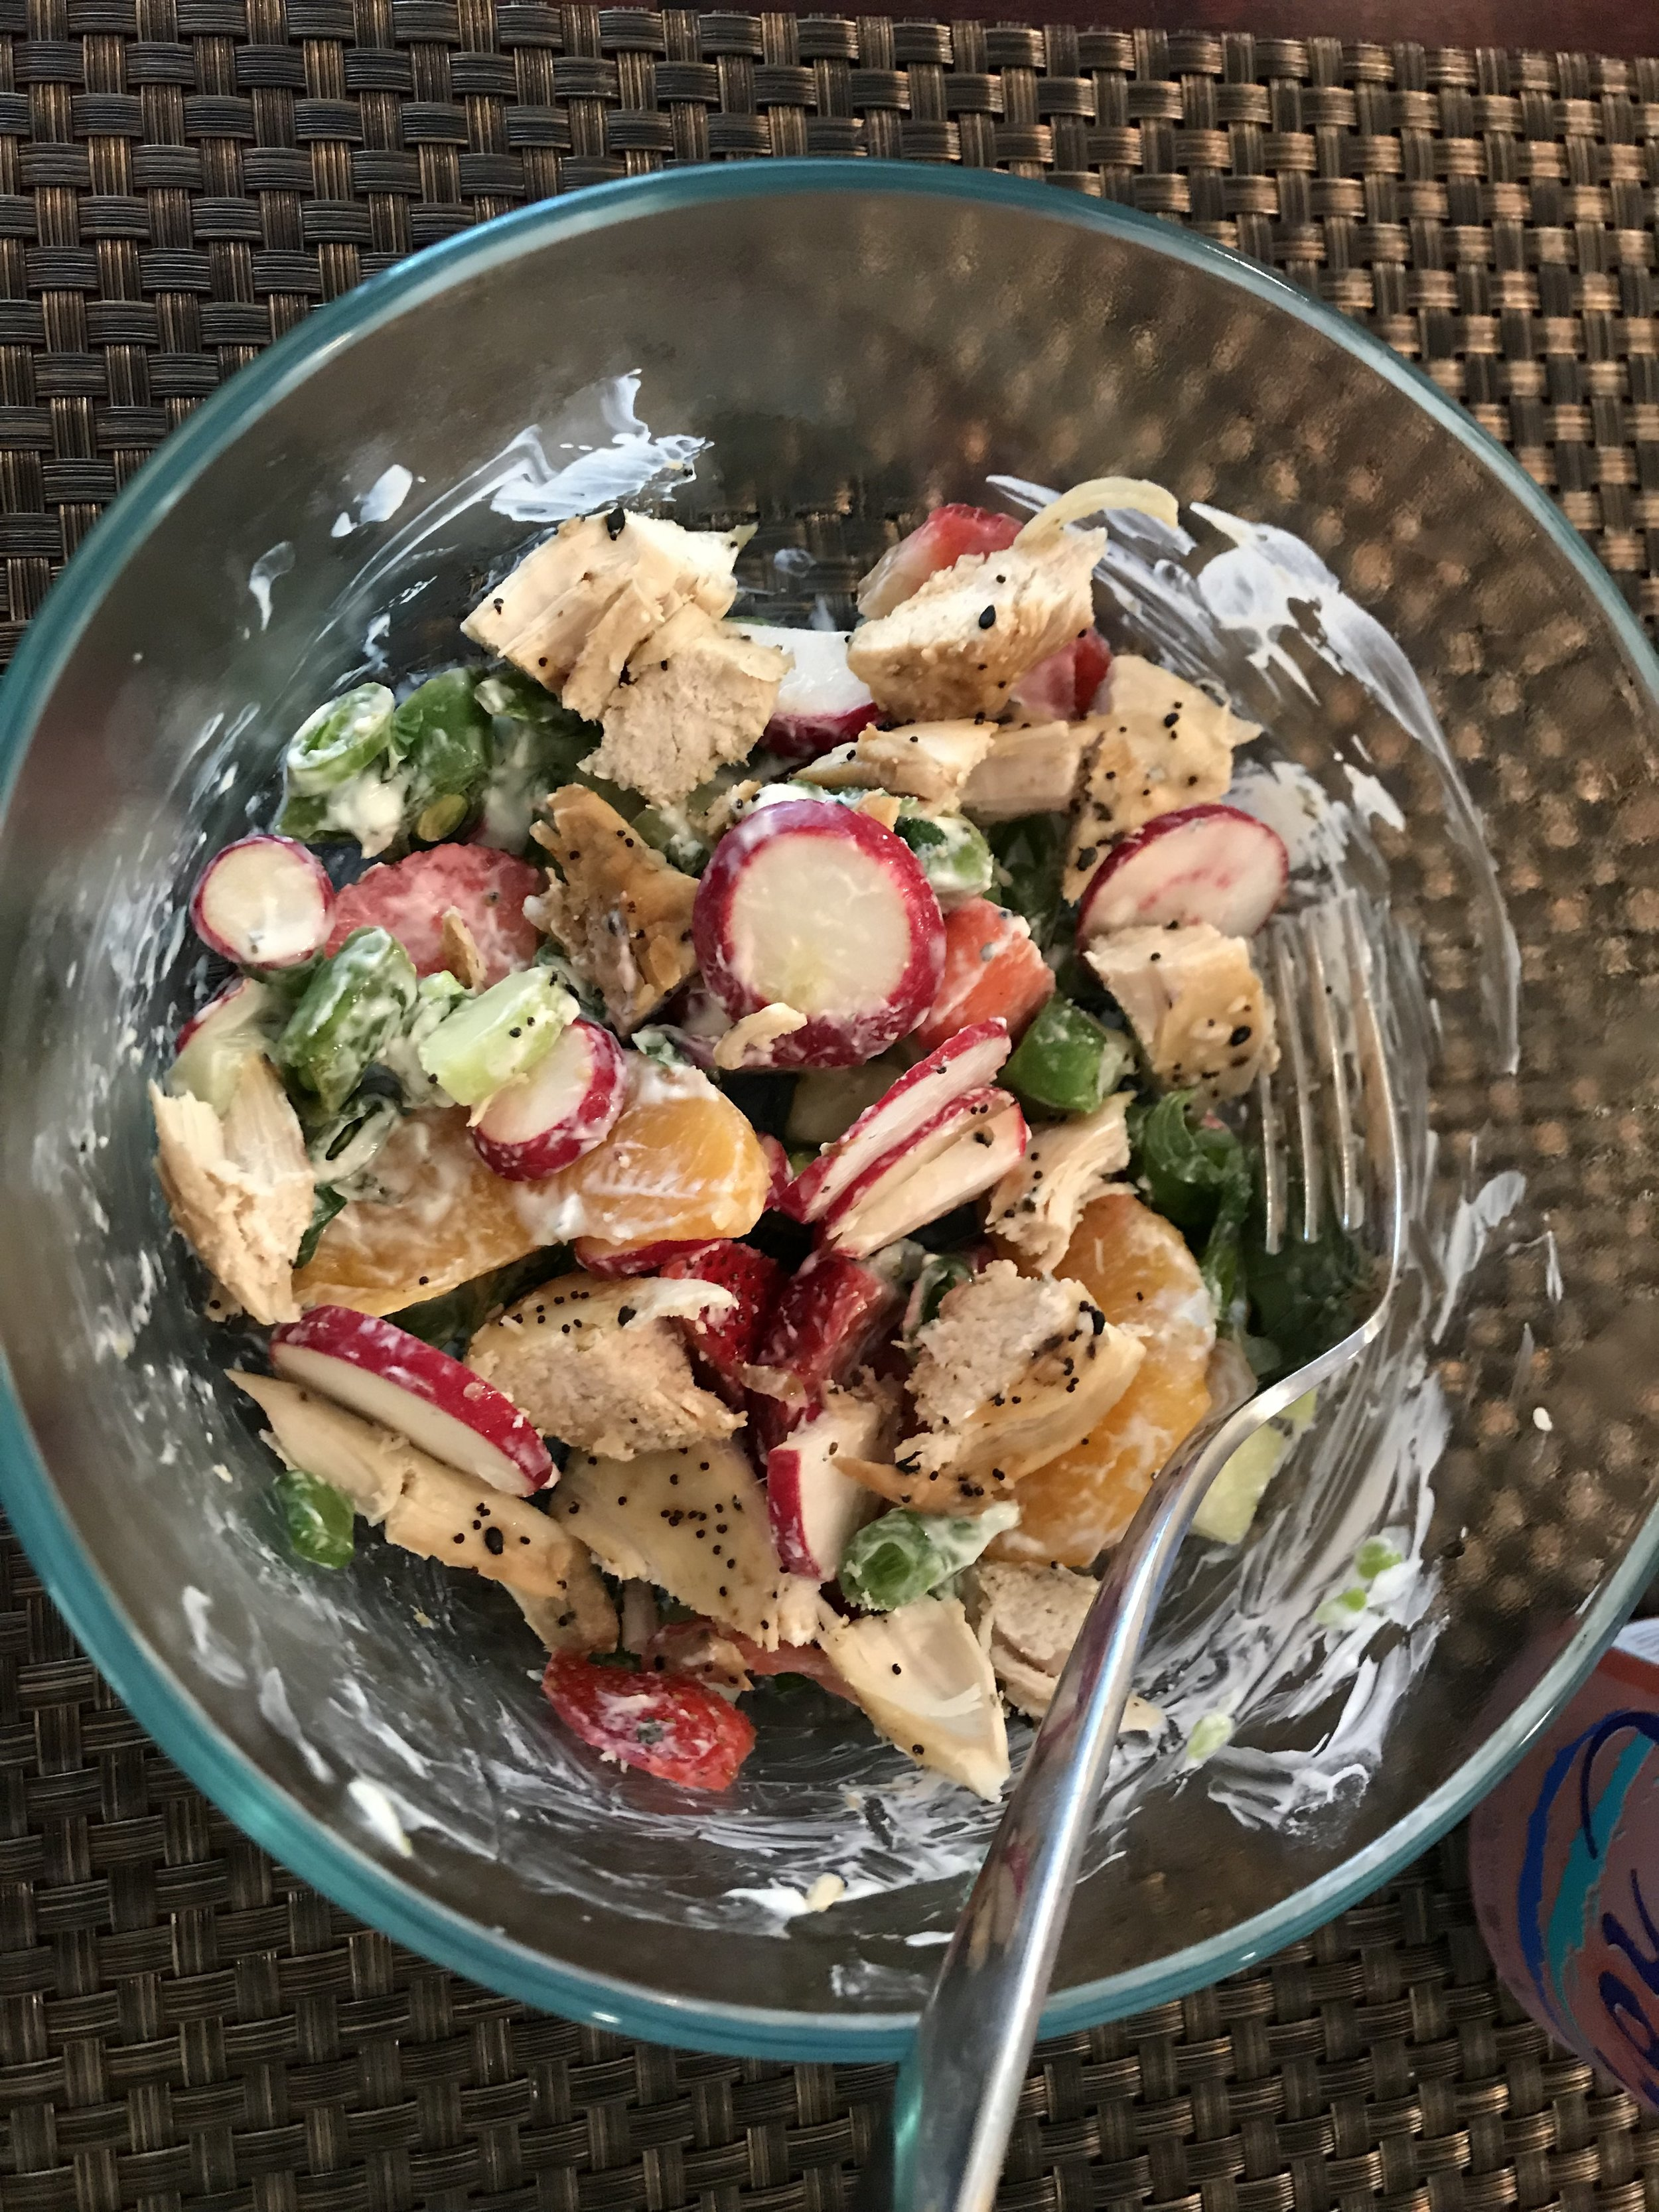 LUNCH - Fixate Spring Salad with chopped Chicken Breast.